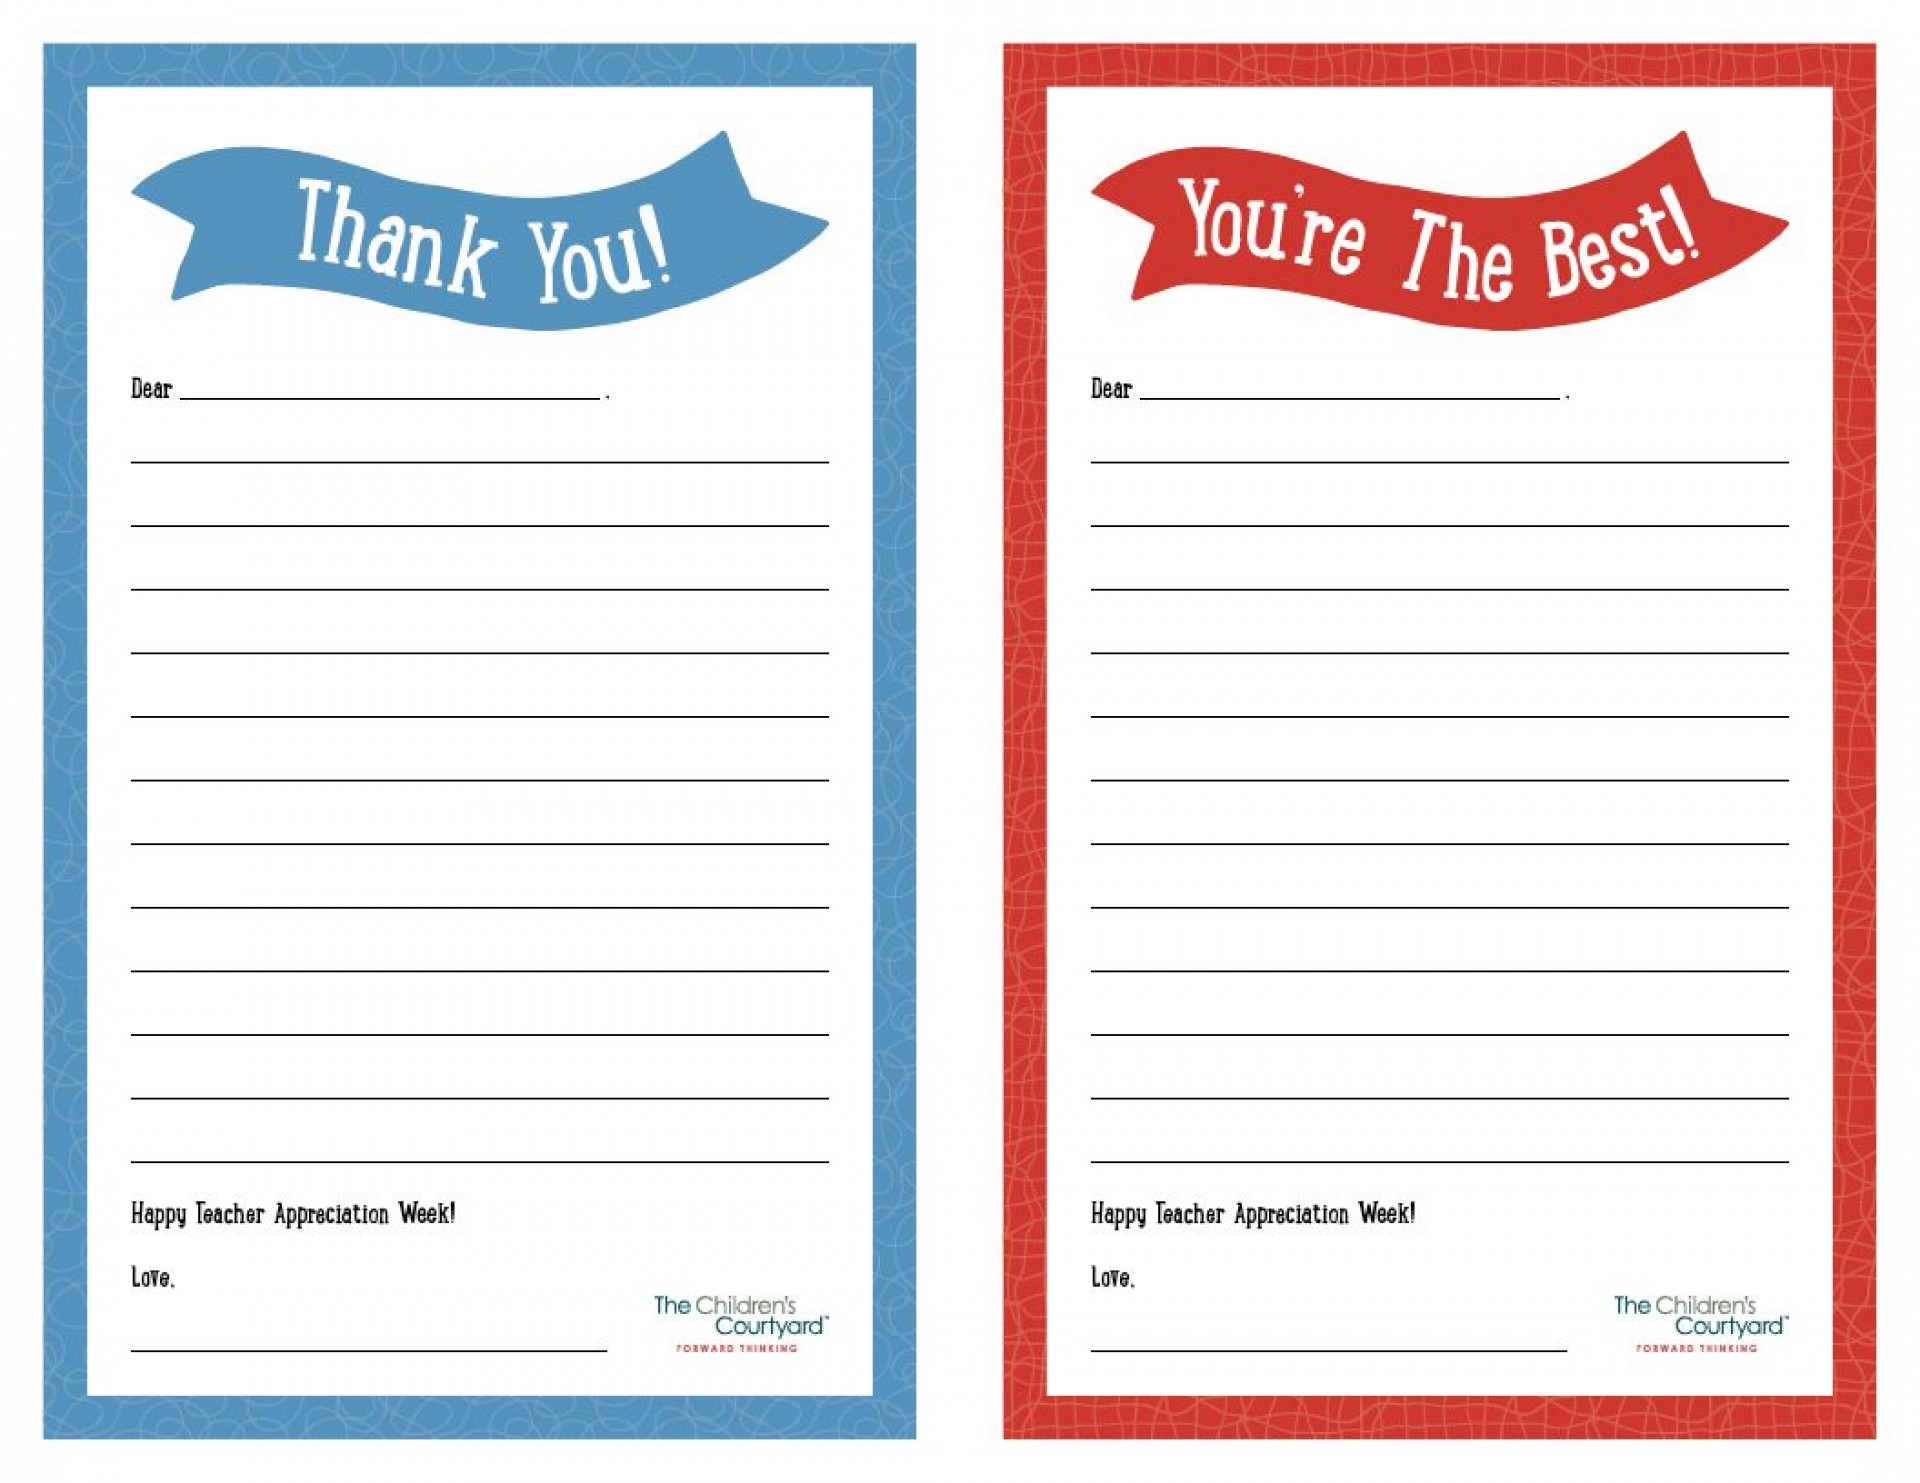 007 Awful Thank You Note Template For Kid Sample  Kids Child Pdf Letter1920